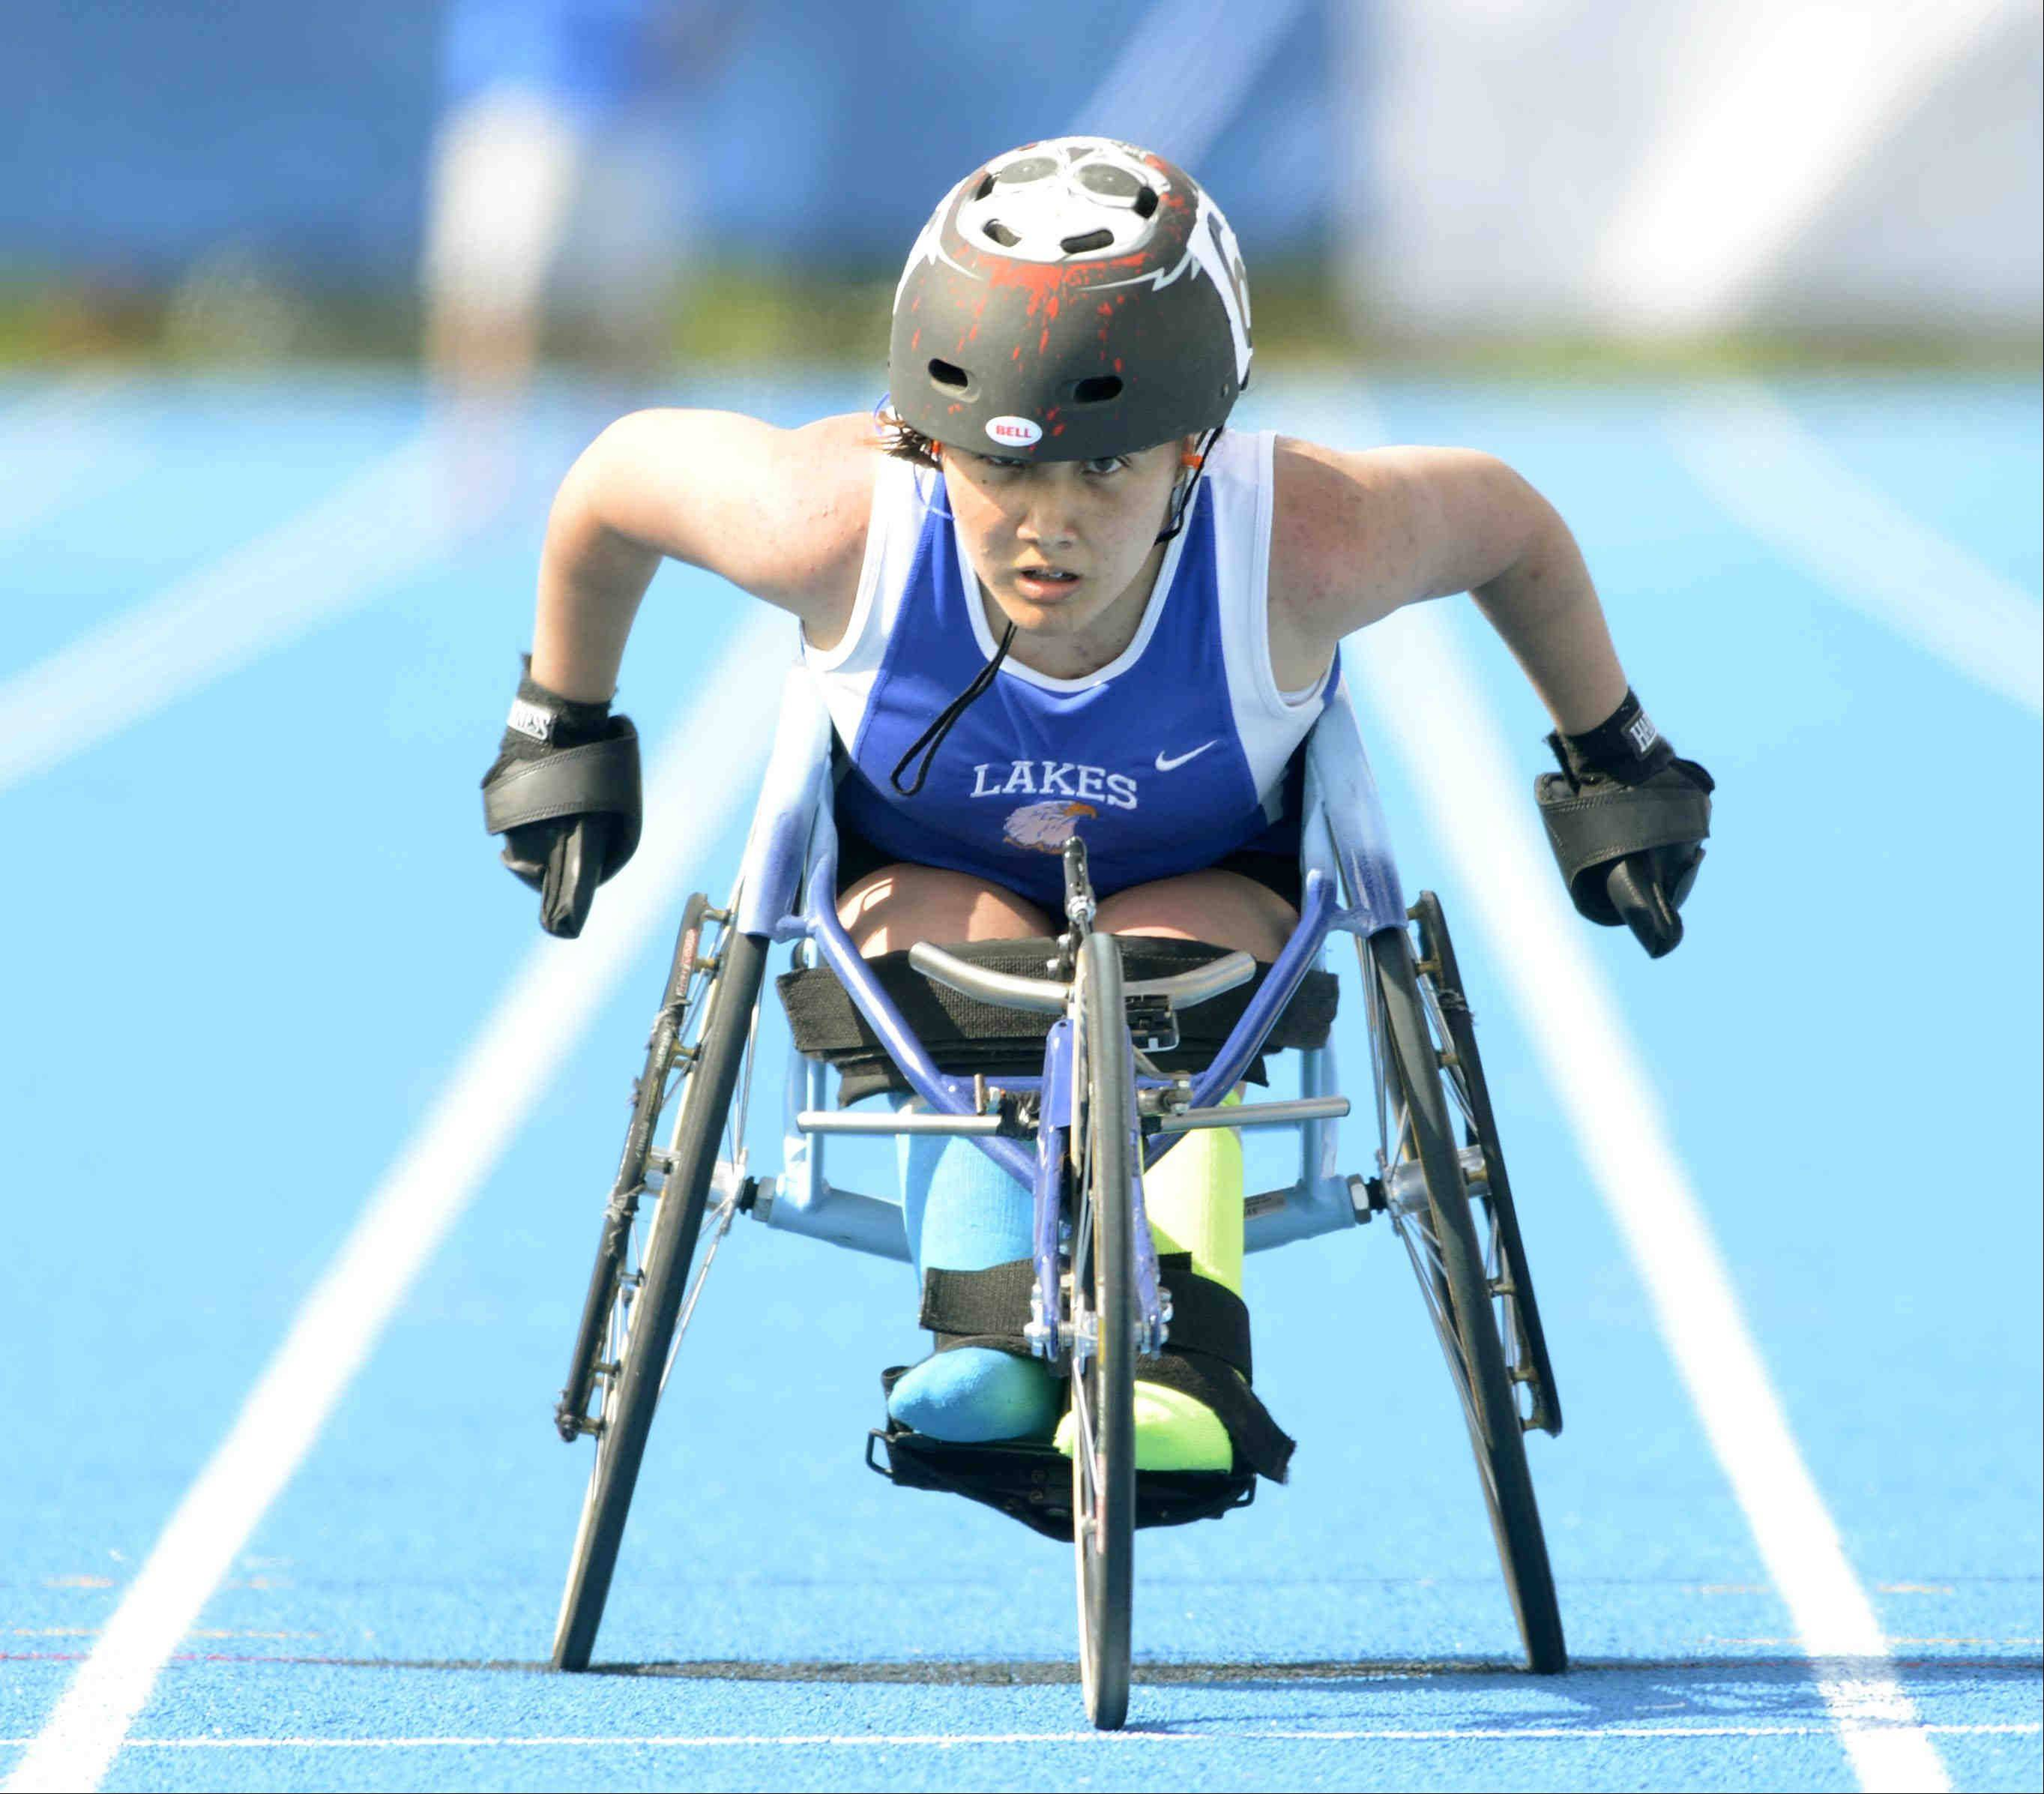 John Starks/jstarks@dailyherald.comLakes' Evelyn Felipez competed in the 100 and 200 meter wheelchair race Saturday at the girls state track and field finals at O'Brien Stadium at Eastern Illinois University in Charleston.